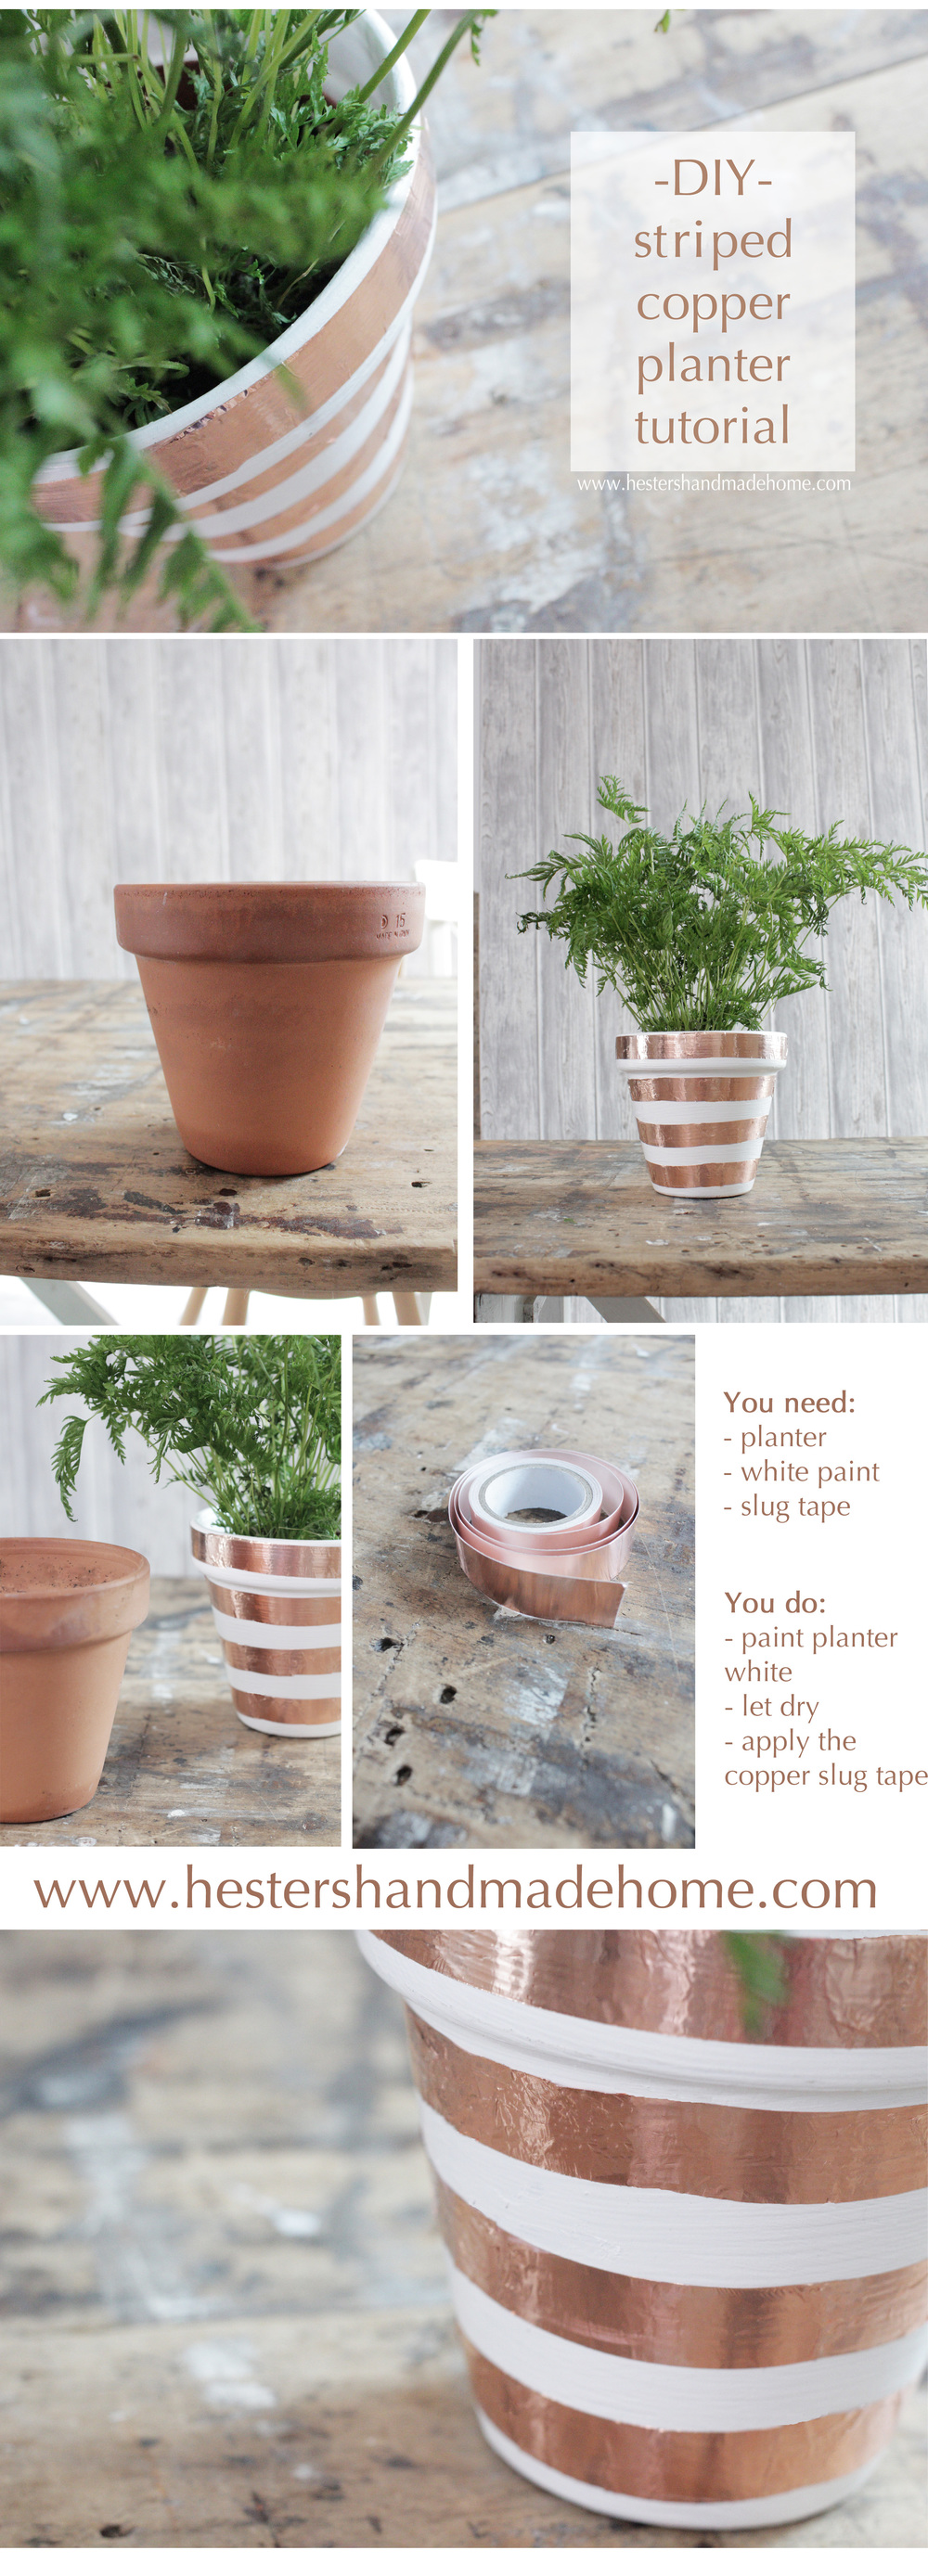 Transform a terracotta pot into a copper striped gem, easy tutorial by www.hestershandmadehome.com